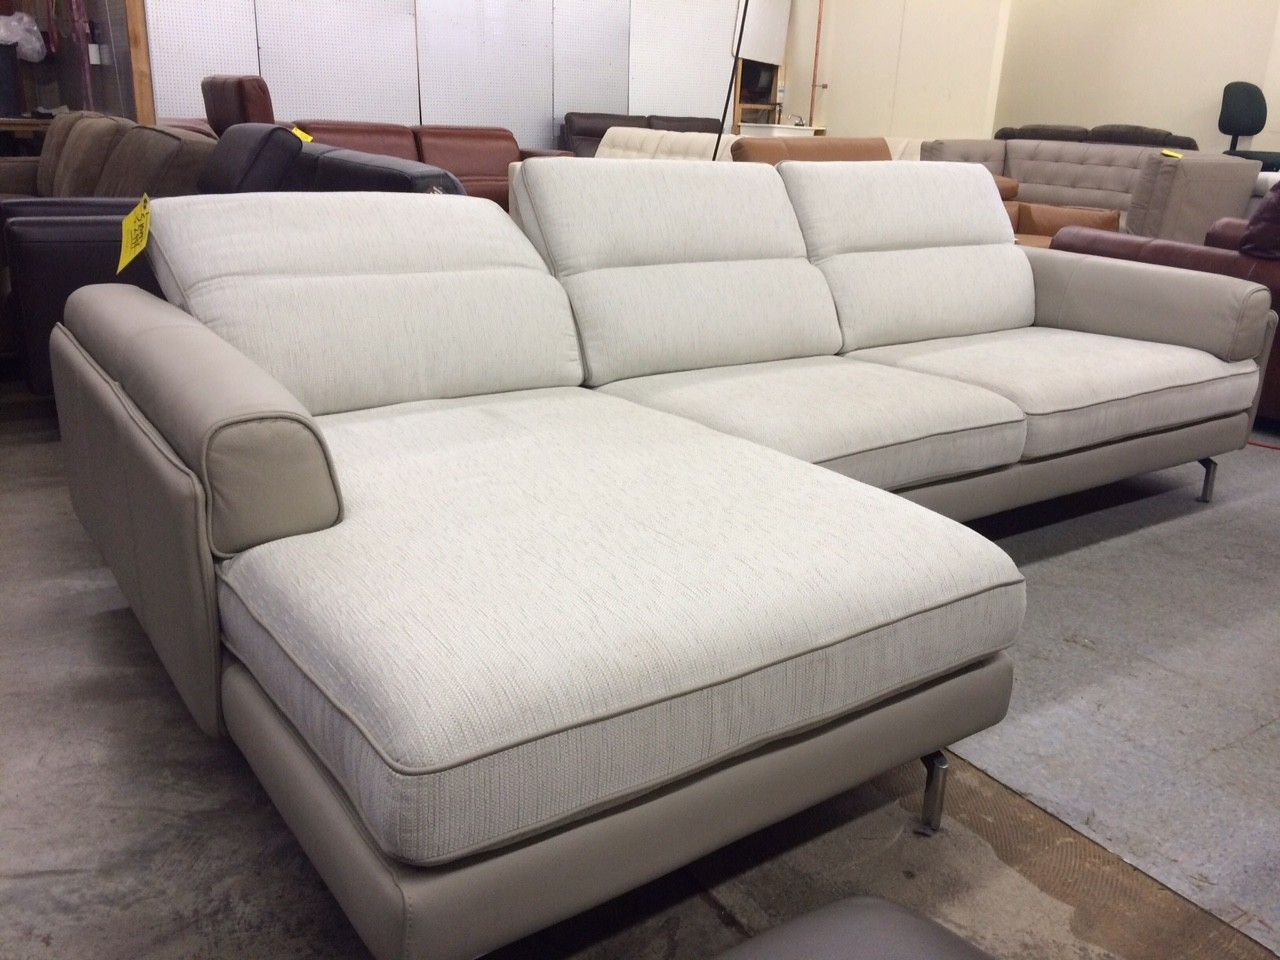 Phenomenal Giuseppe Nicolette Principe Sectional Sofa Left Face Chaise Short Links Chair Design For Home Short Linksinfo